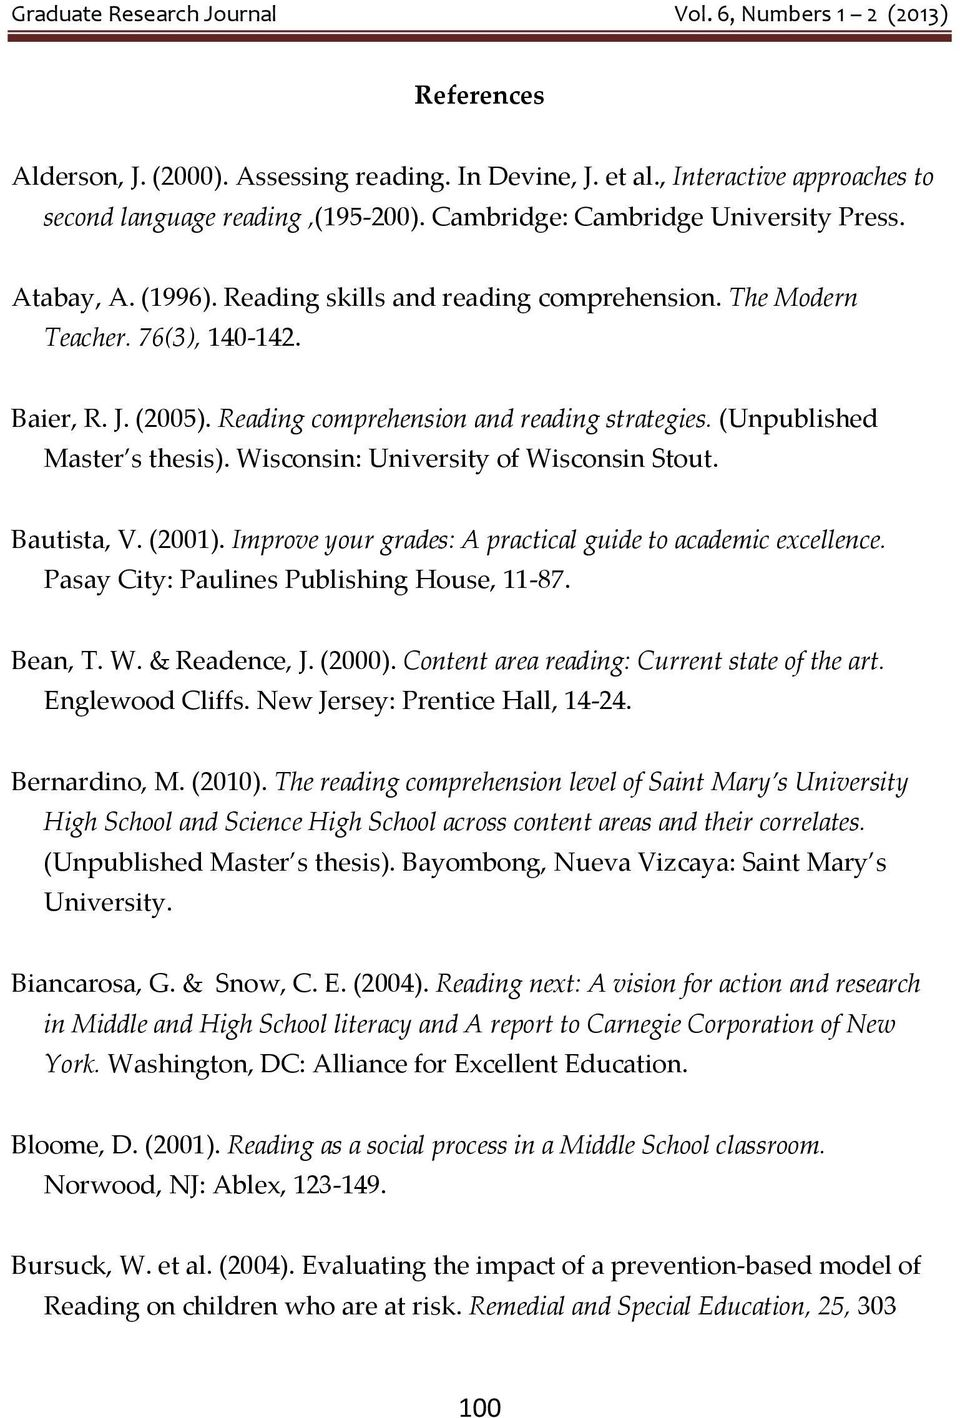 """reading comprehension thesis statement I am working on my own phd thesis on reading comprehension and phd thesis on beginning """" your thesis statement would begin """"human ms thesis, it was."""